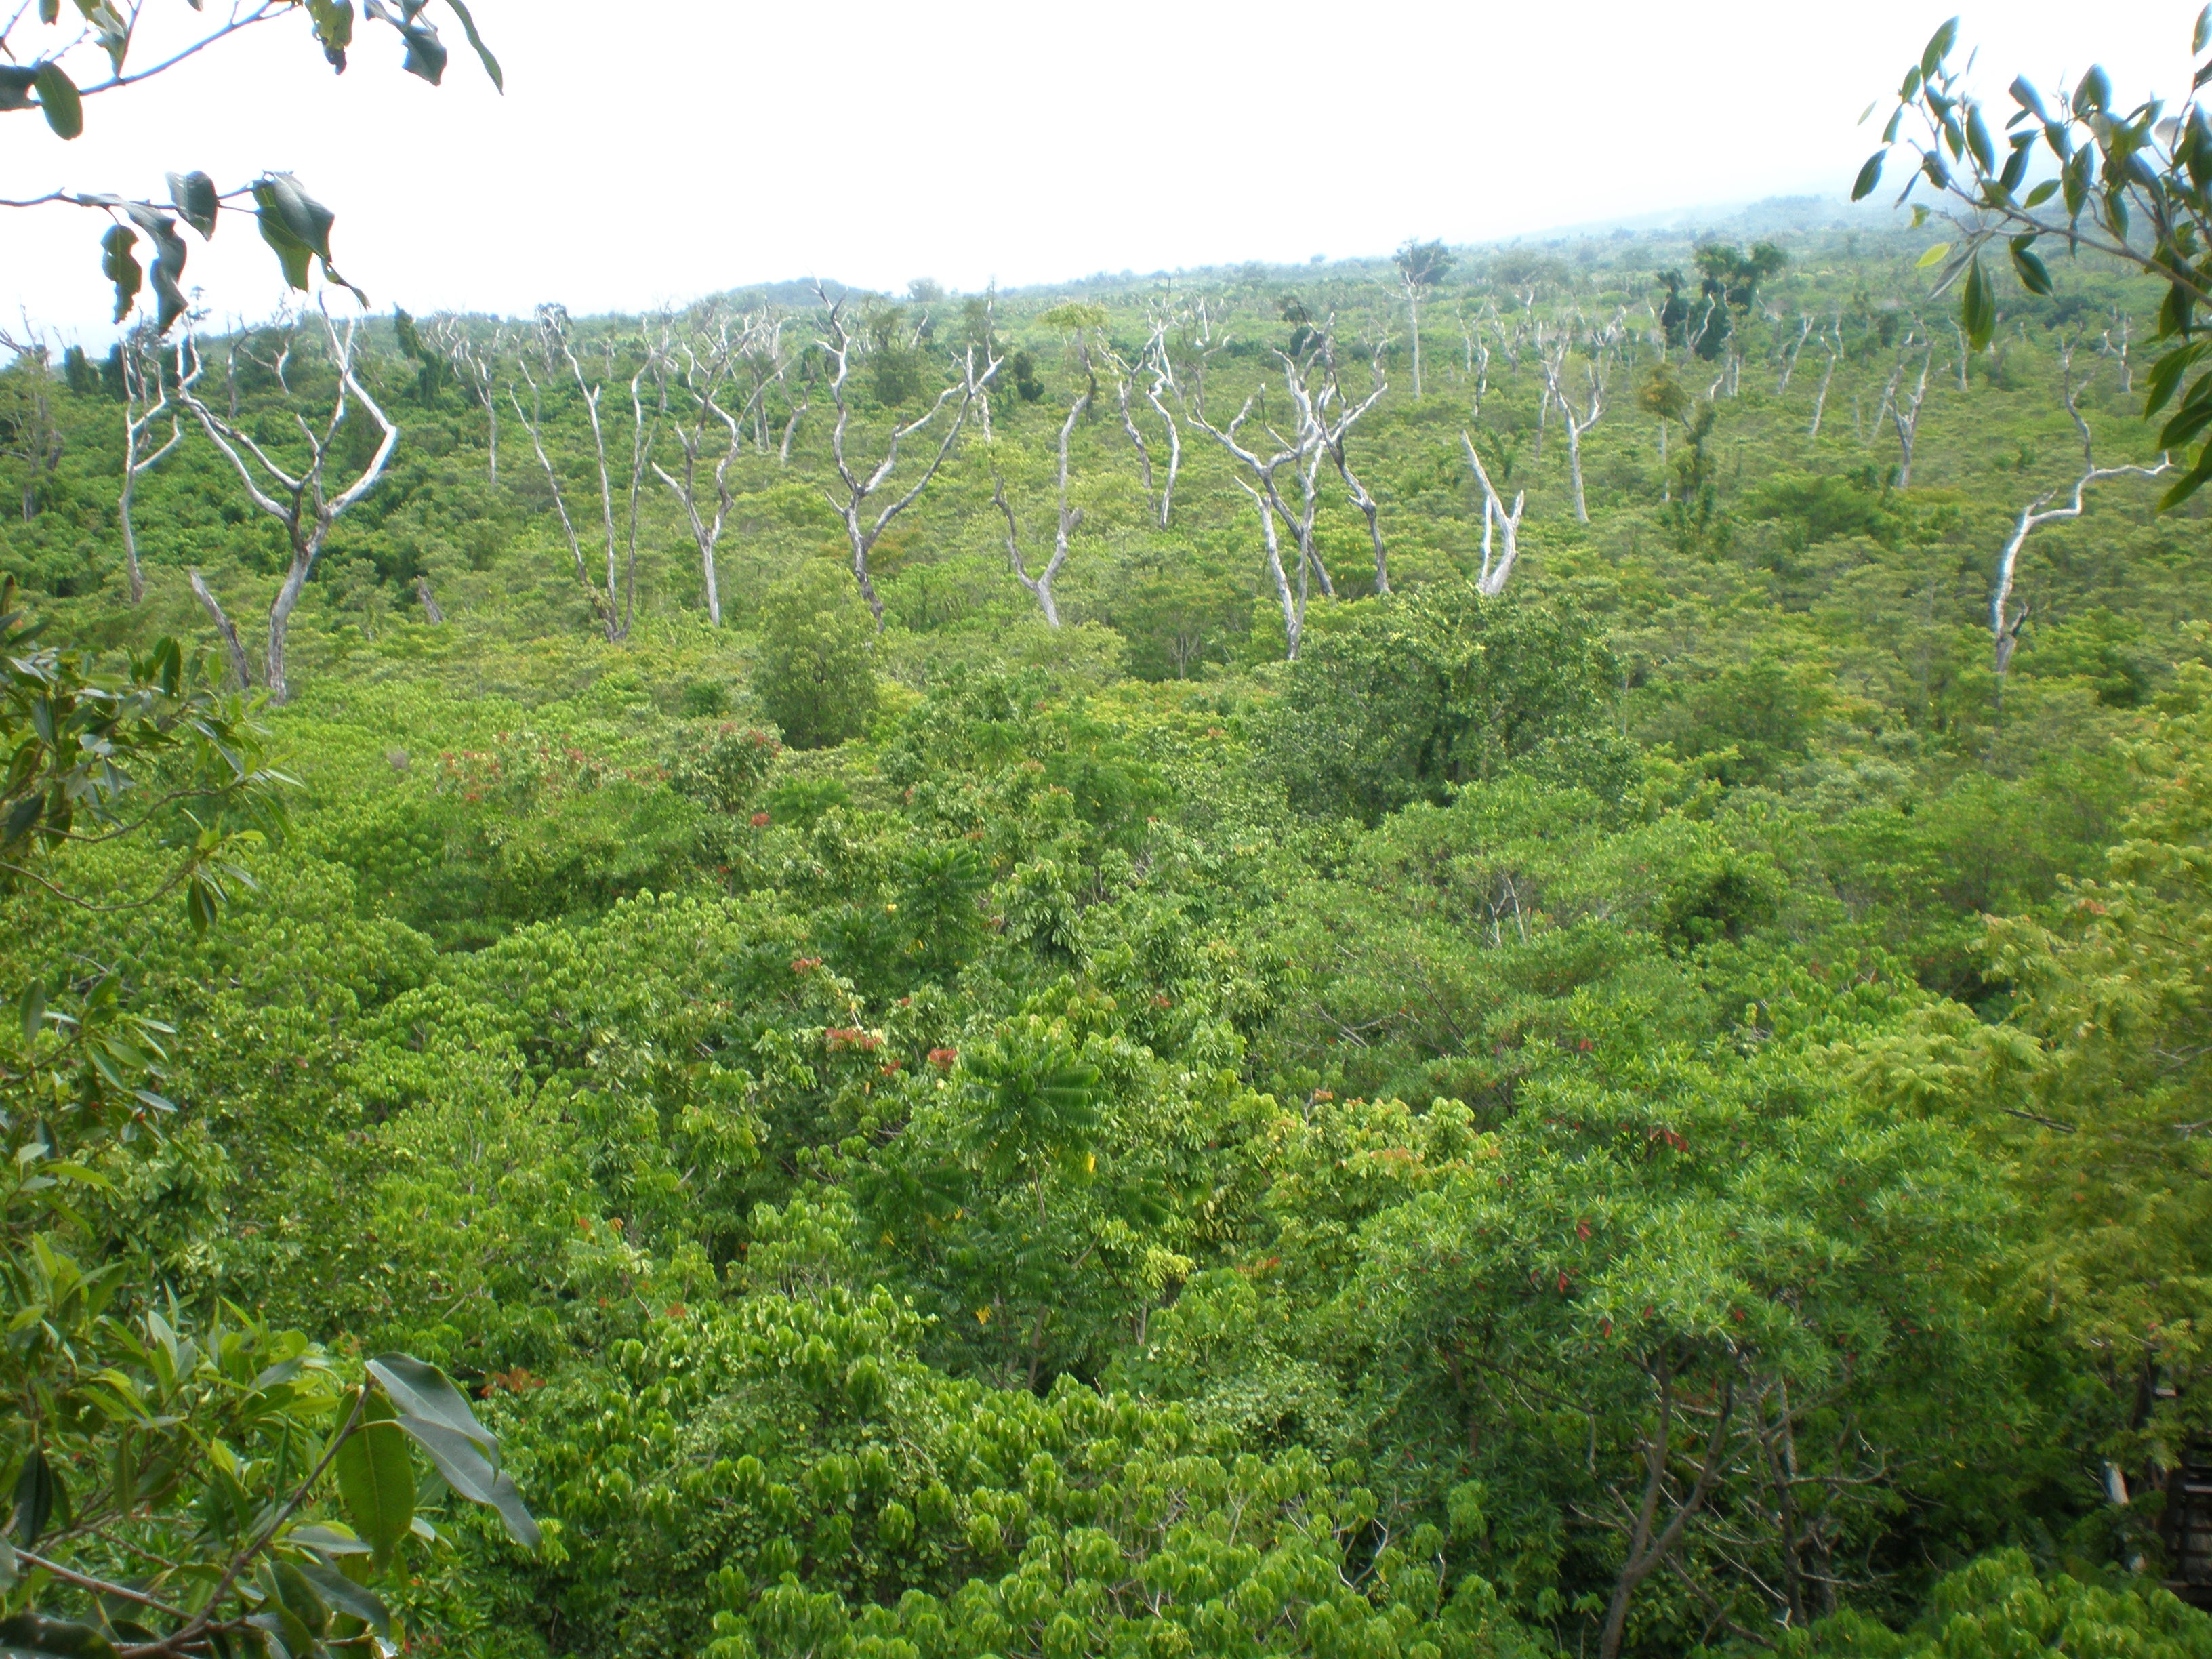 FileView from the top Falealupo Rainforest canopy walkway Savaii Samoa 2009 & File:View from the top Falealupo Rainforest canopy walkway ...